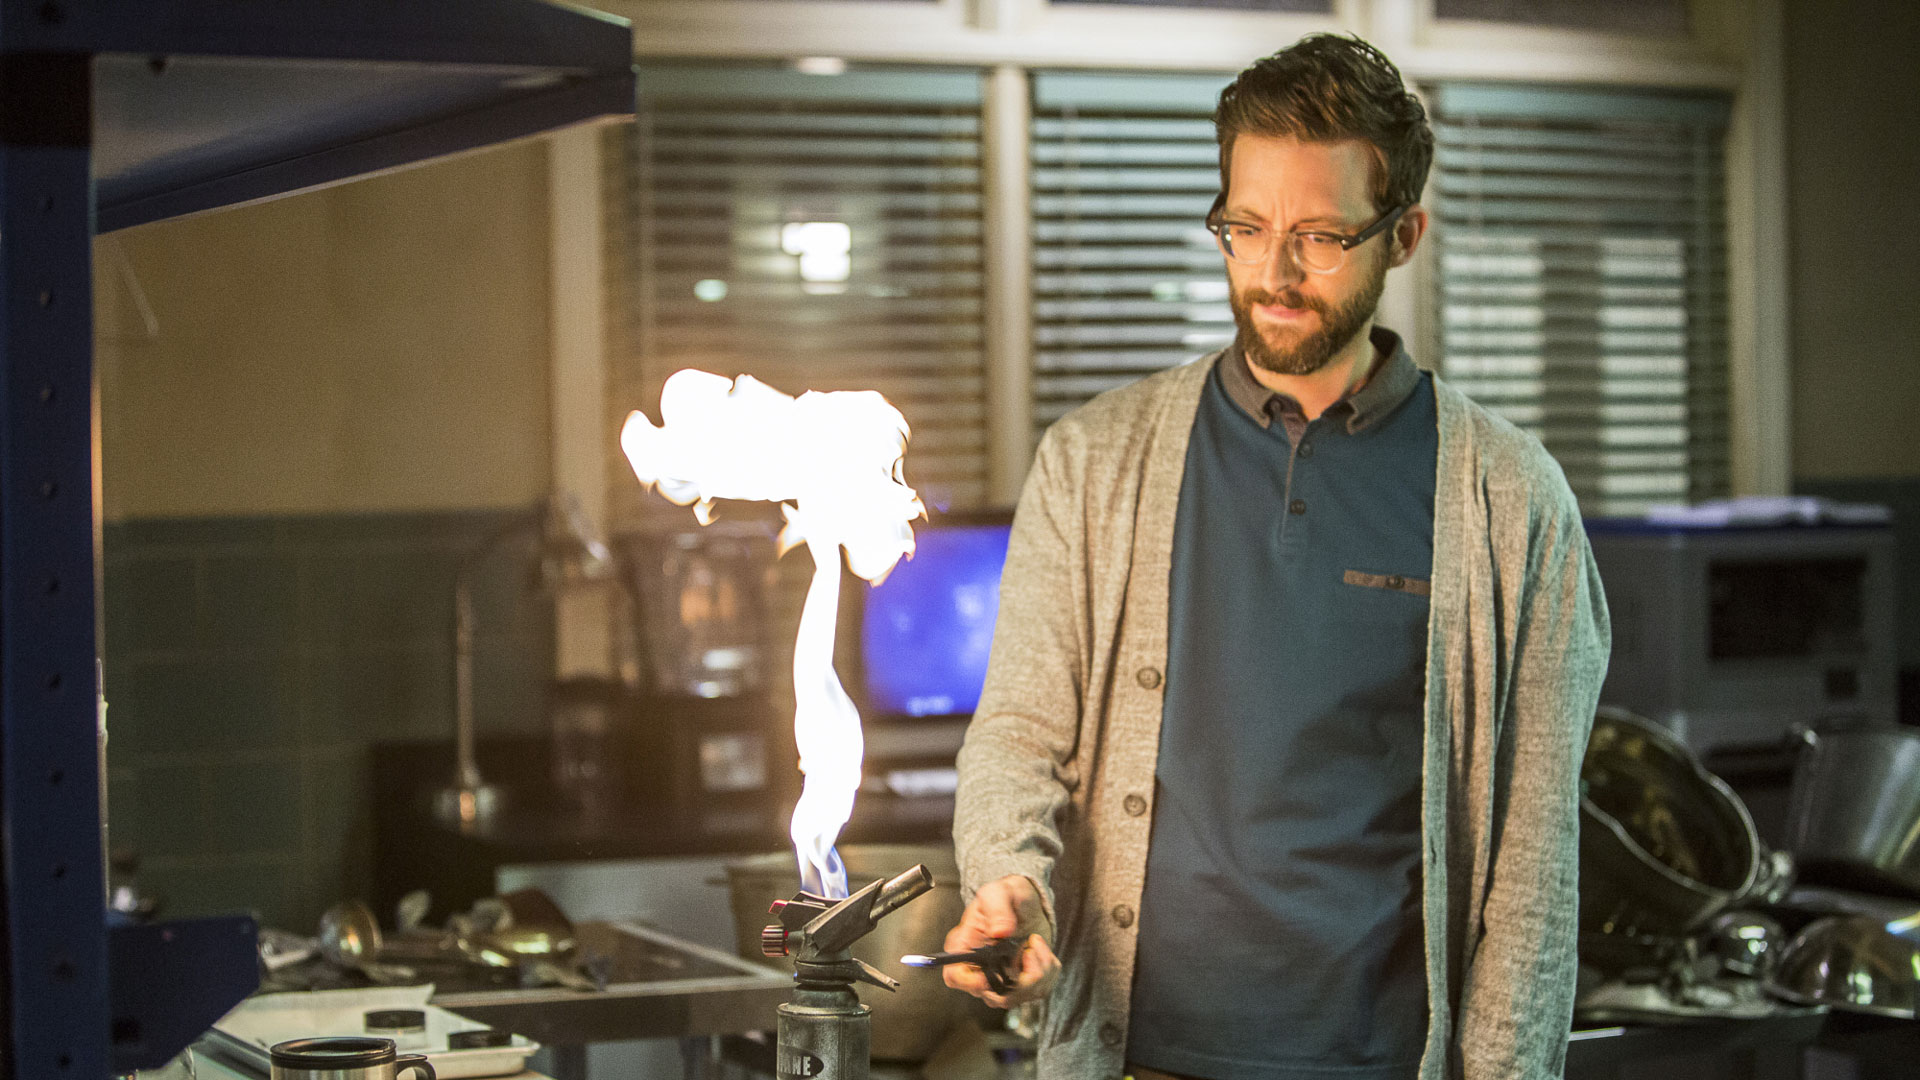 Sebastian Lund plays with fire.